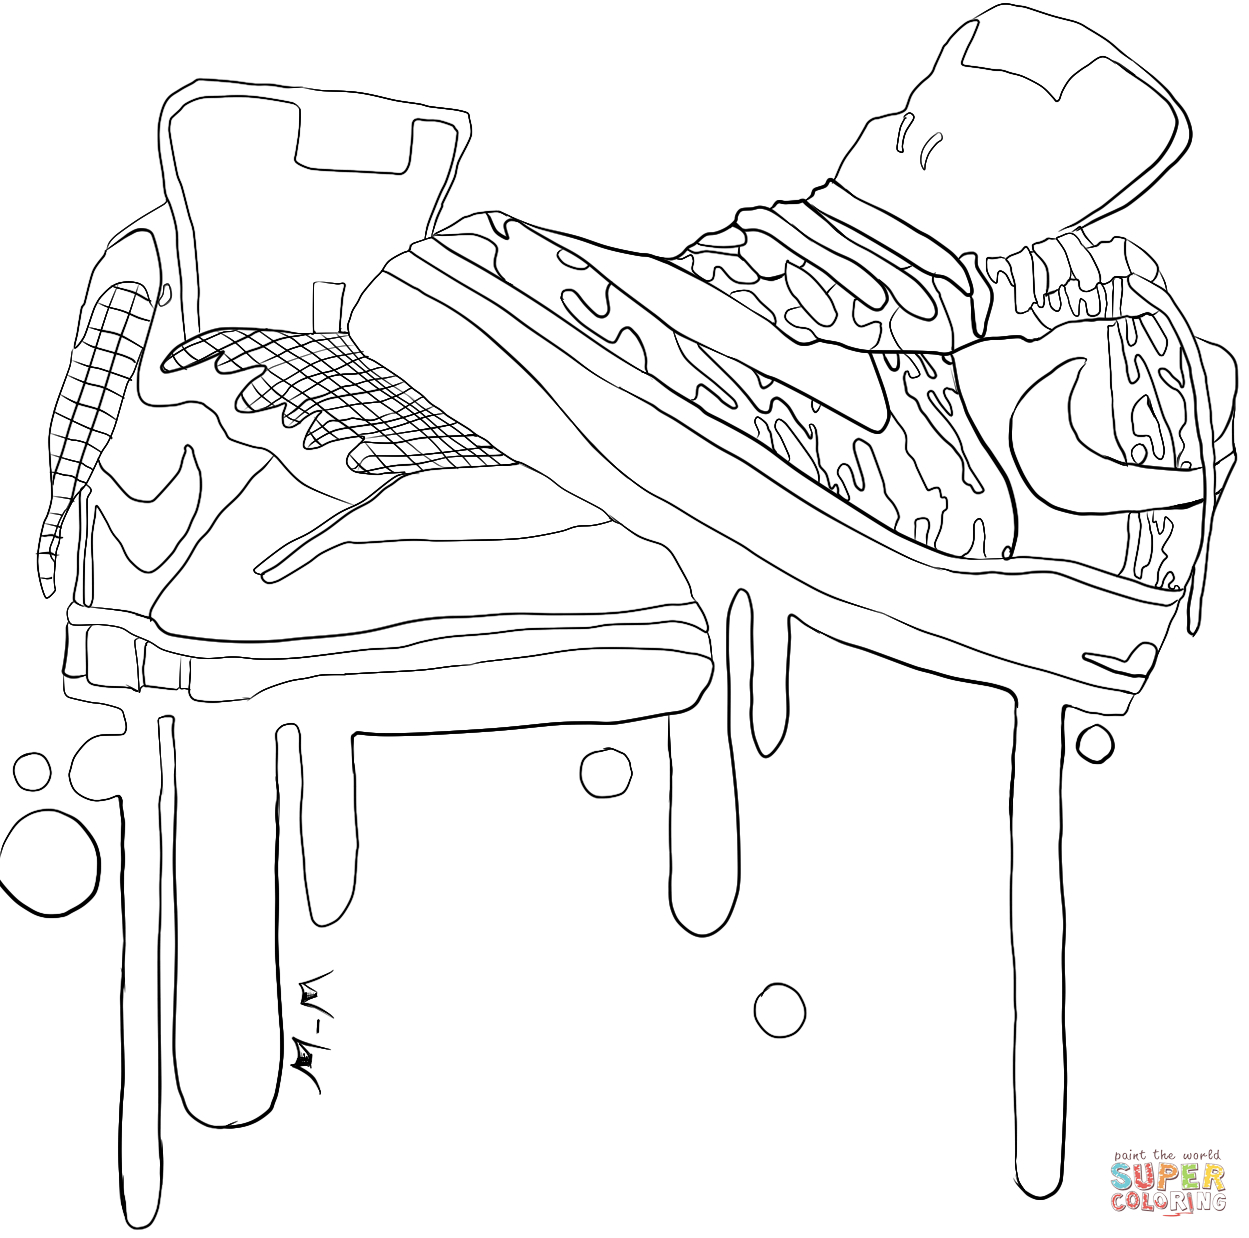 27+ Great Photo of Nike Coloring Pages